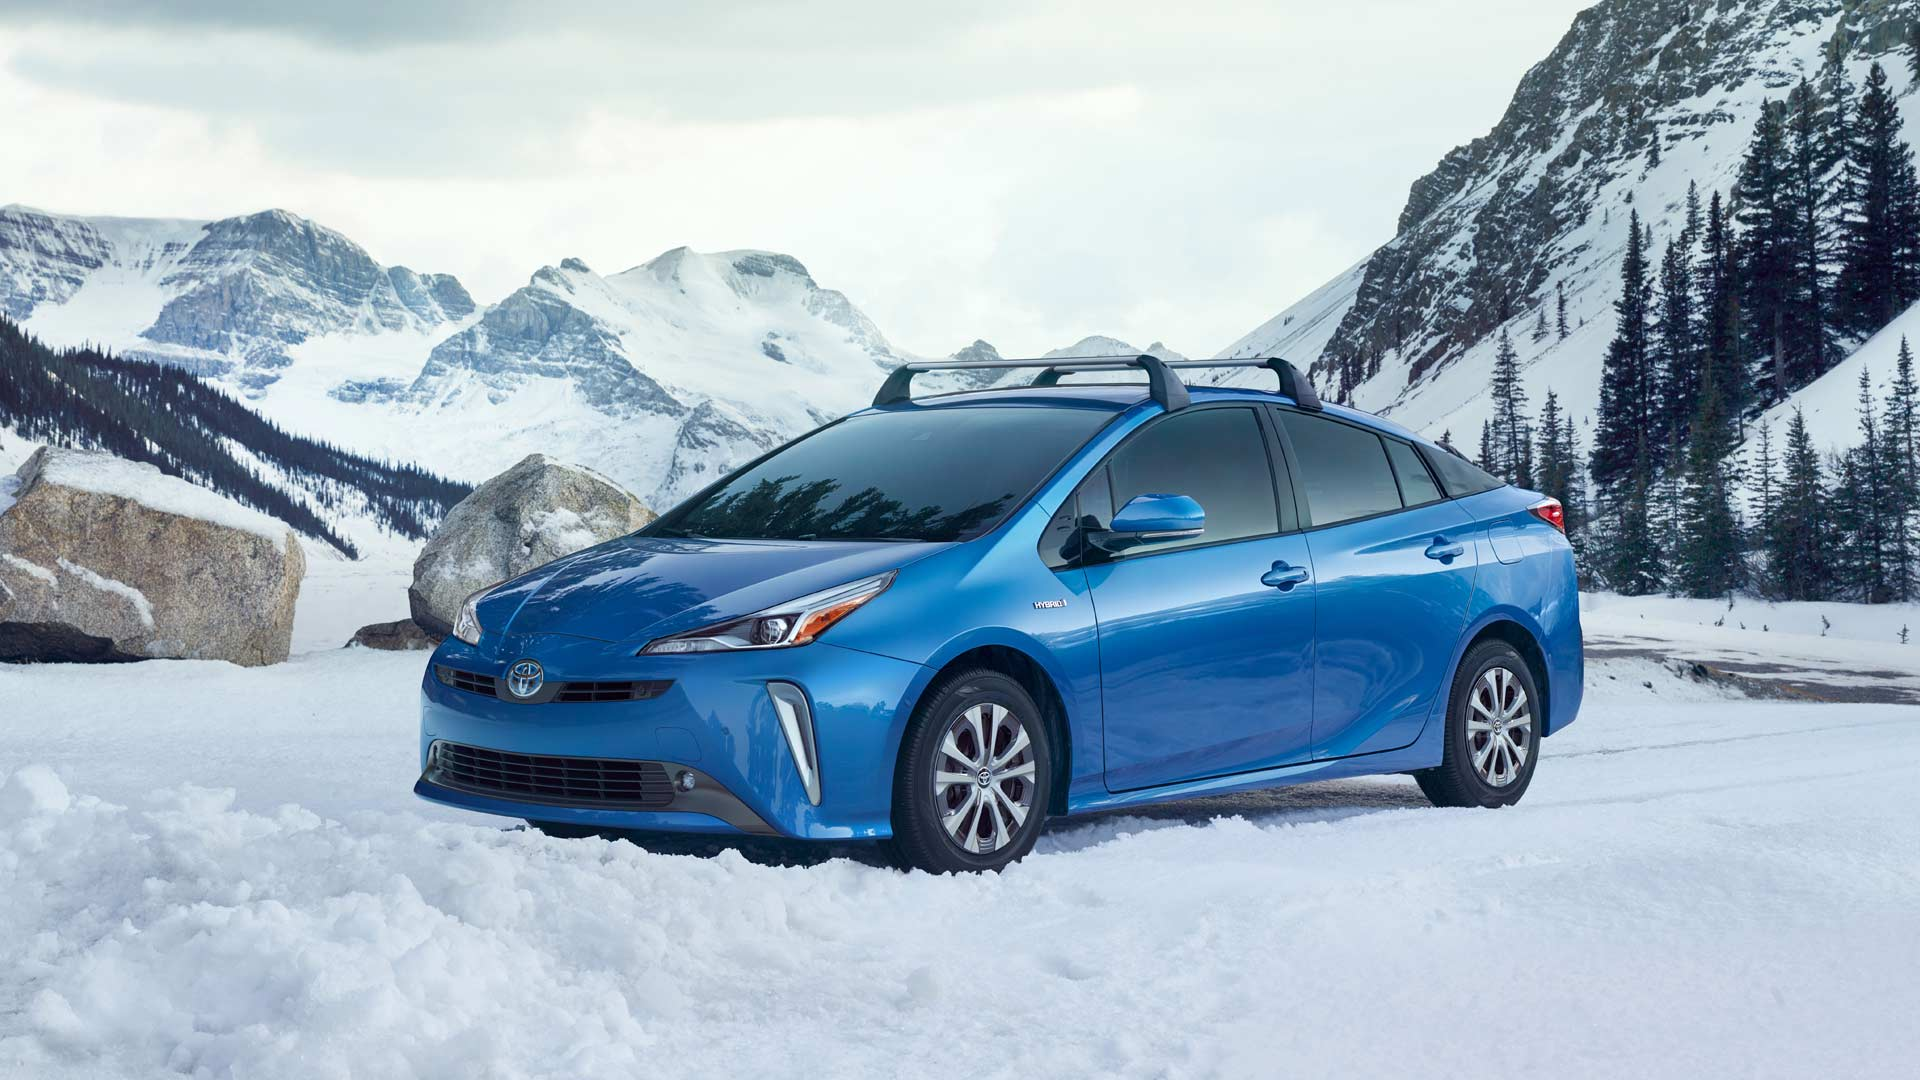 2019 Toyota Prius Gets On Demand Awd E System Autodevot